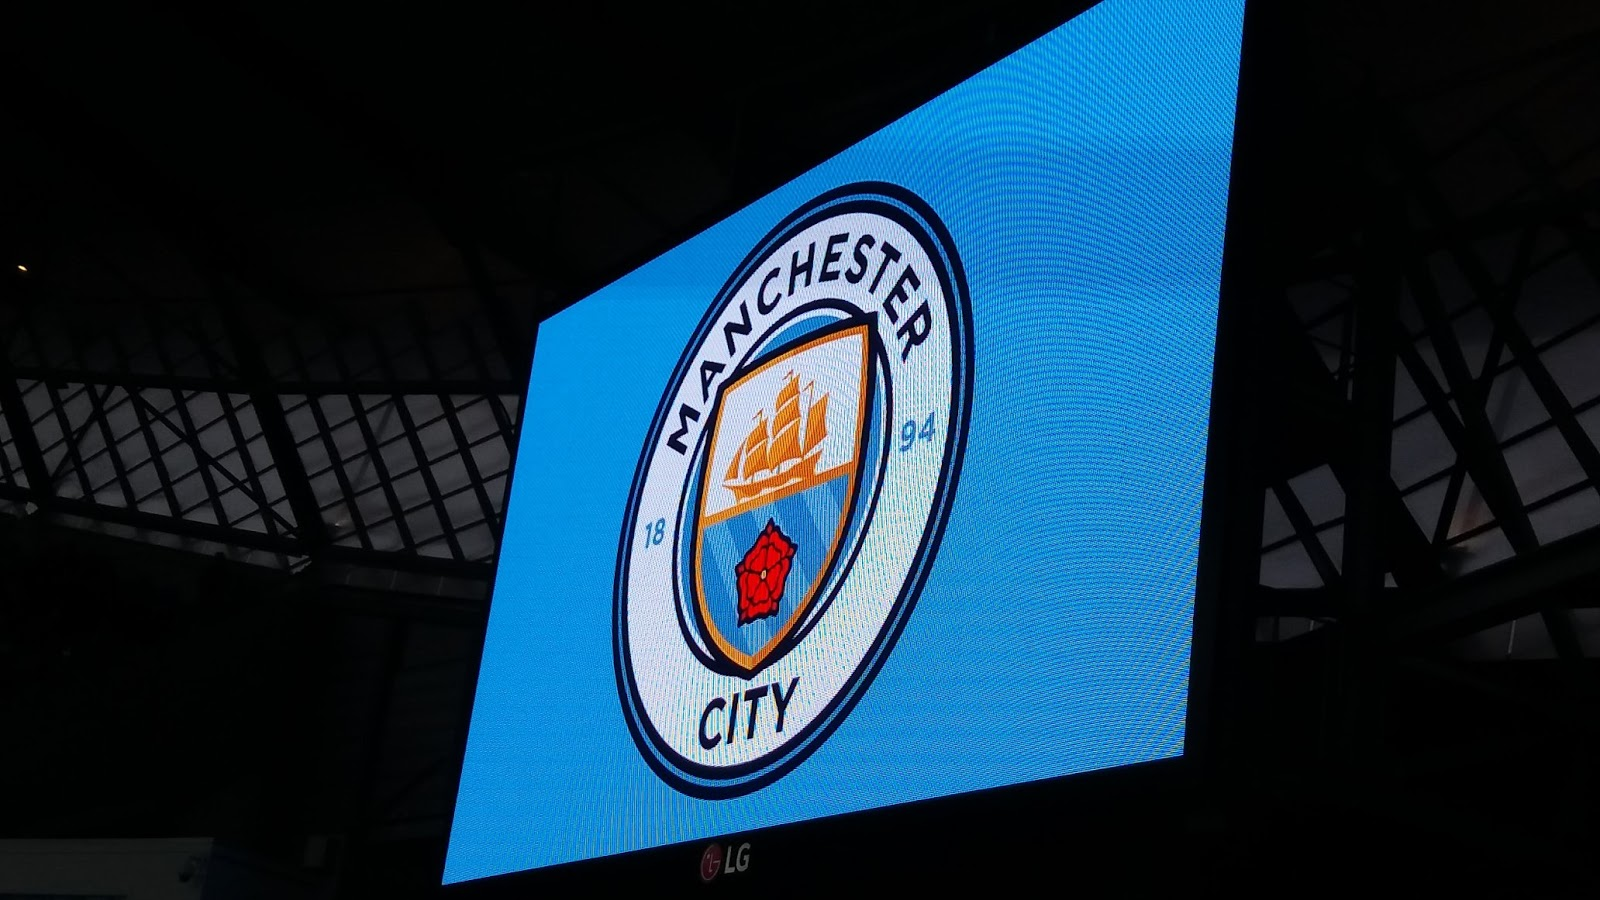 new manchester The official web site for the city of manchester, nh covering all local government news and information.